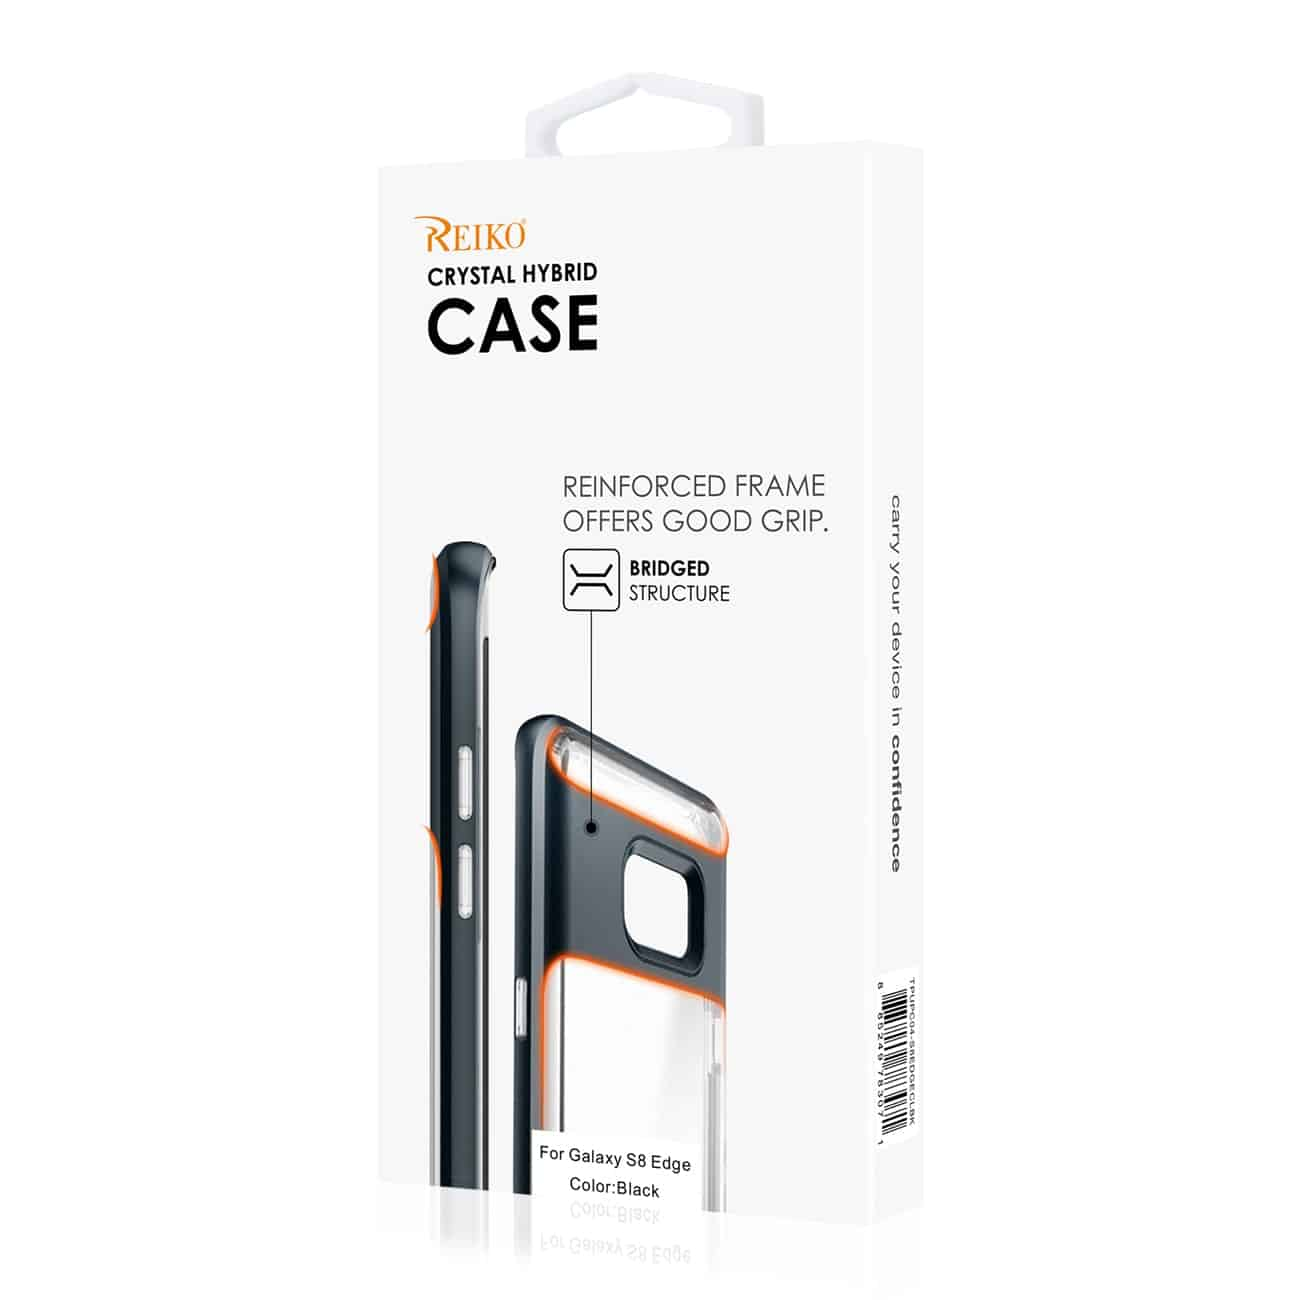 SAMSUNG GALAXY S8 EDGE/ S8 PLUS TRANSPARENT BUMPER CASE WITH KICKSTAND AND MATTE INNER FINISH IN CLEAR BLACK